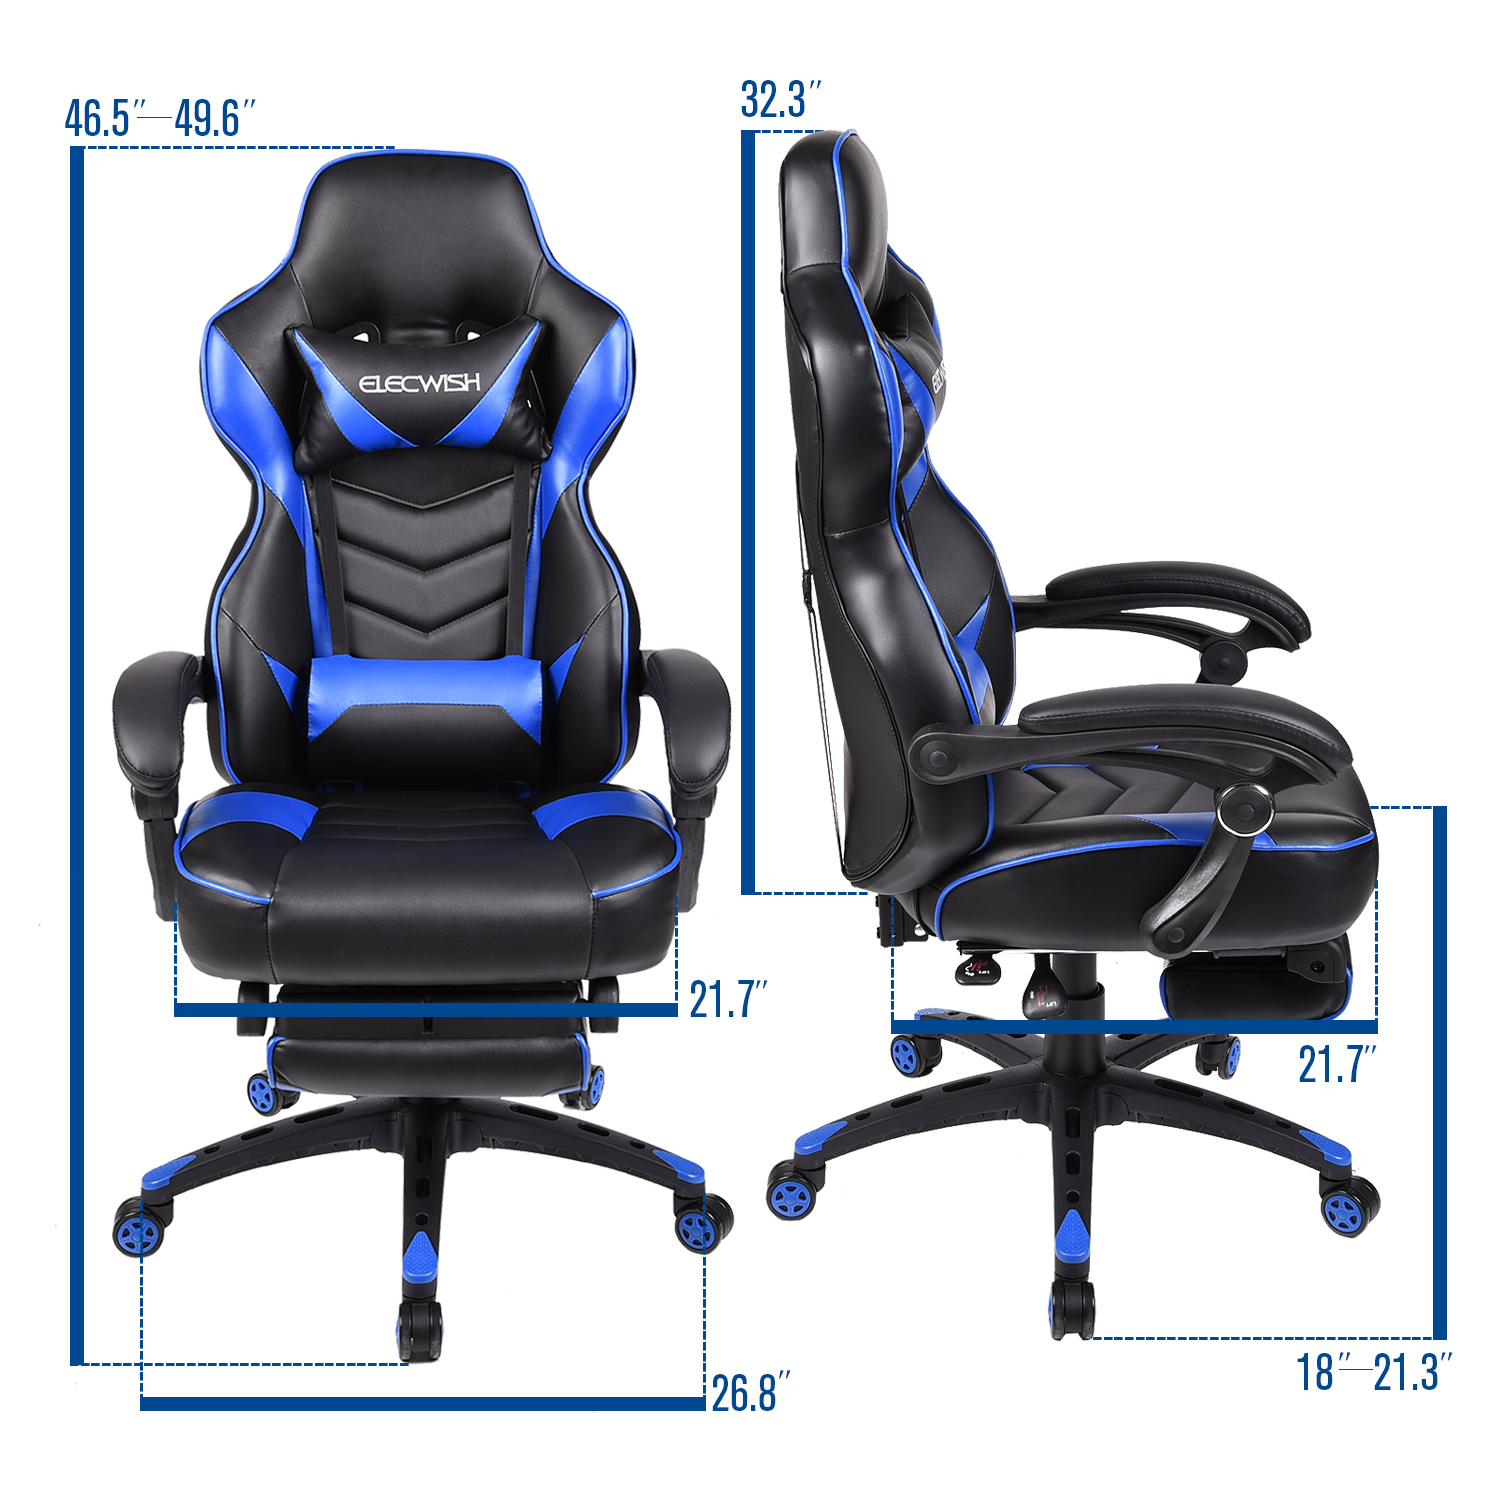 chair have hybrid nice details these office inspiring ideas work great we that desk good photo the gaming present comfortable for